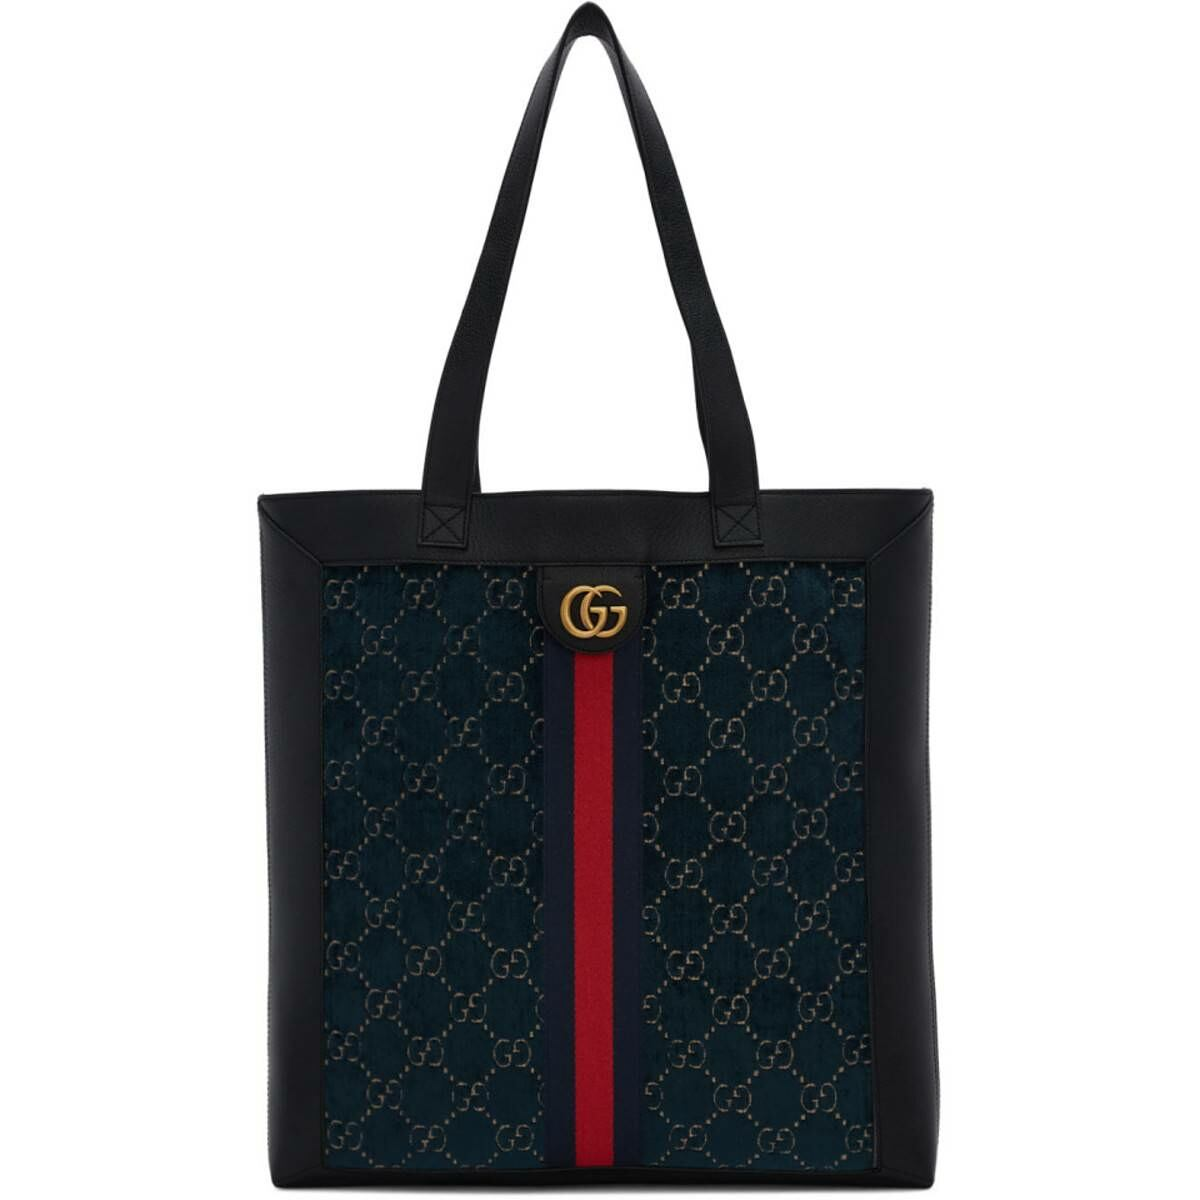 Gucci Blue Velvet GG Tote Ssense USA MEN Men ACCESSORIES Mens BAGS